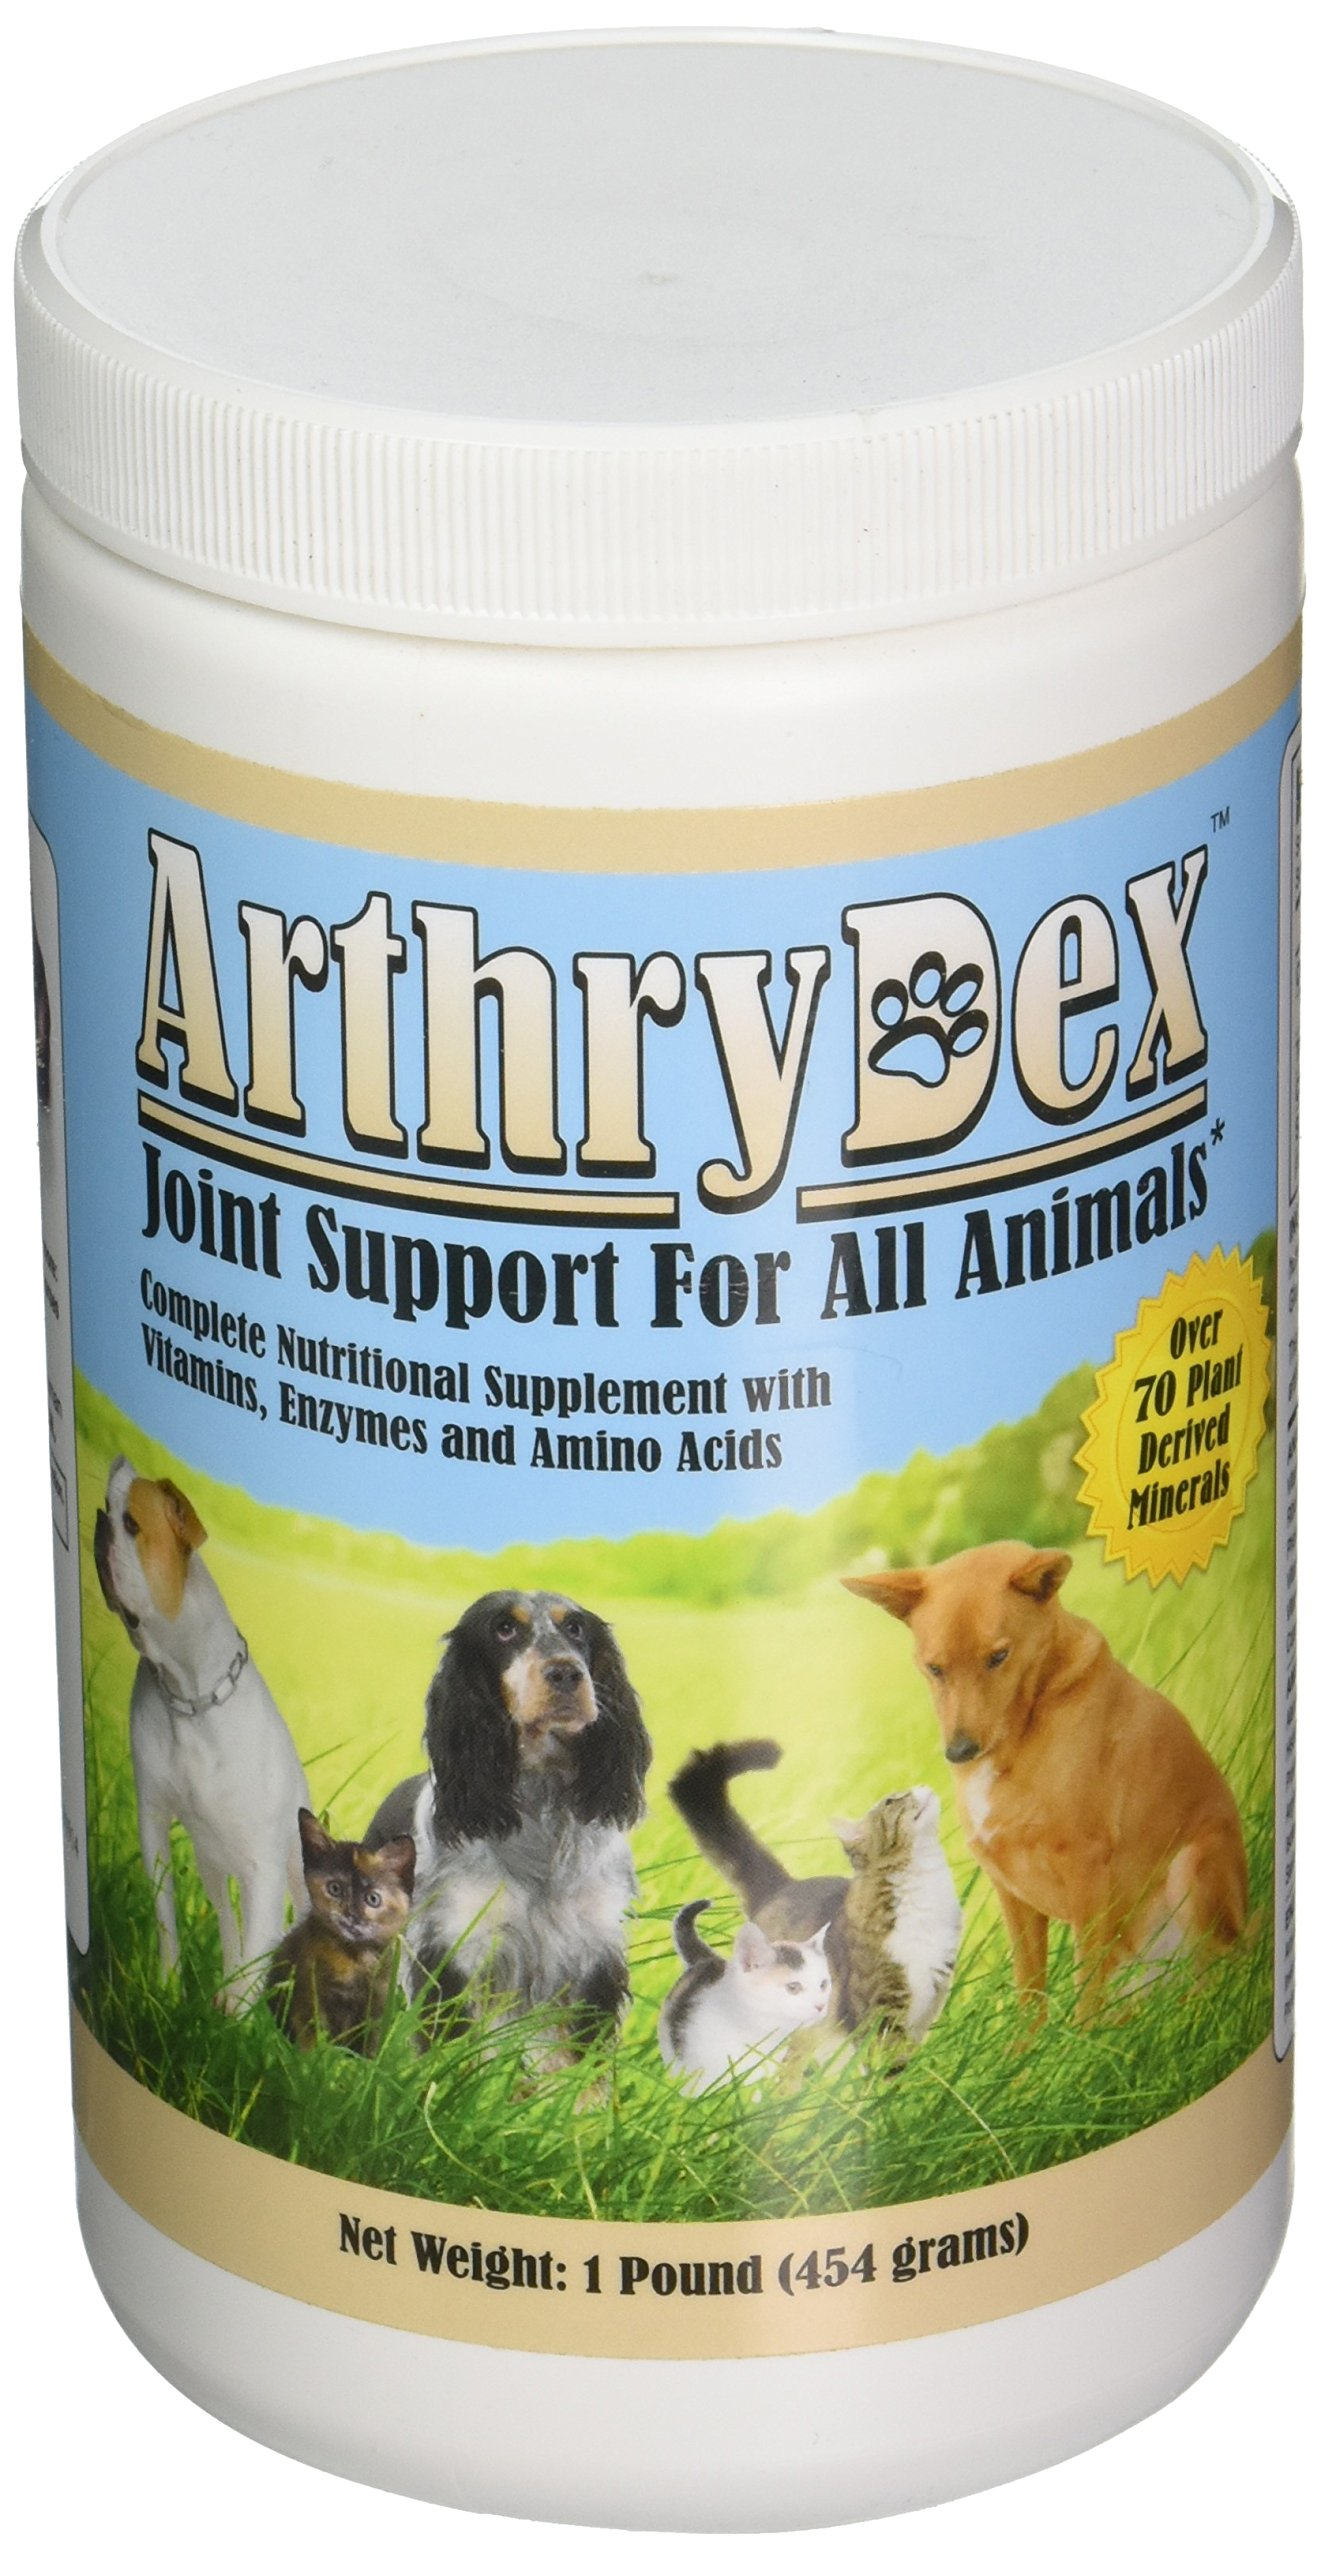 ArthryDex – 1 lb canister